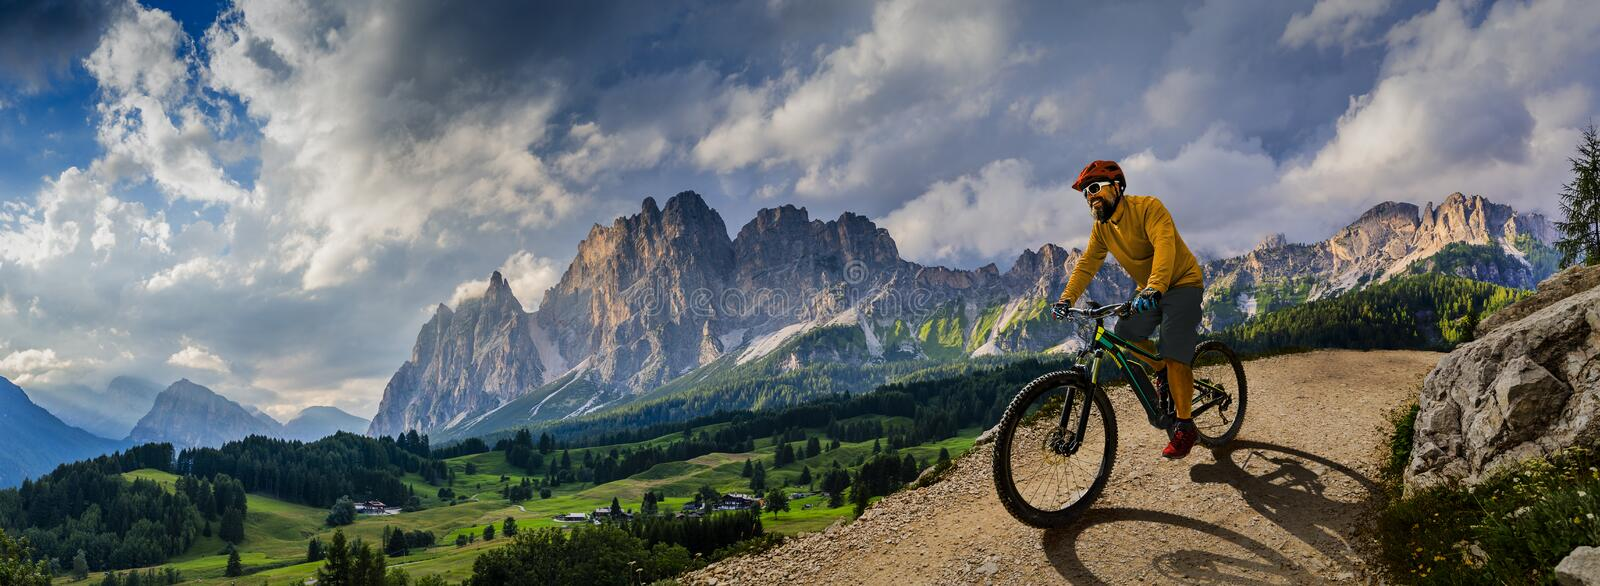 Man cycling on electric bike, rides mountain trail. Man riding on bike in Dolomites mountains landscape. Cycling e-mtb enduro stock image